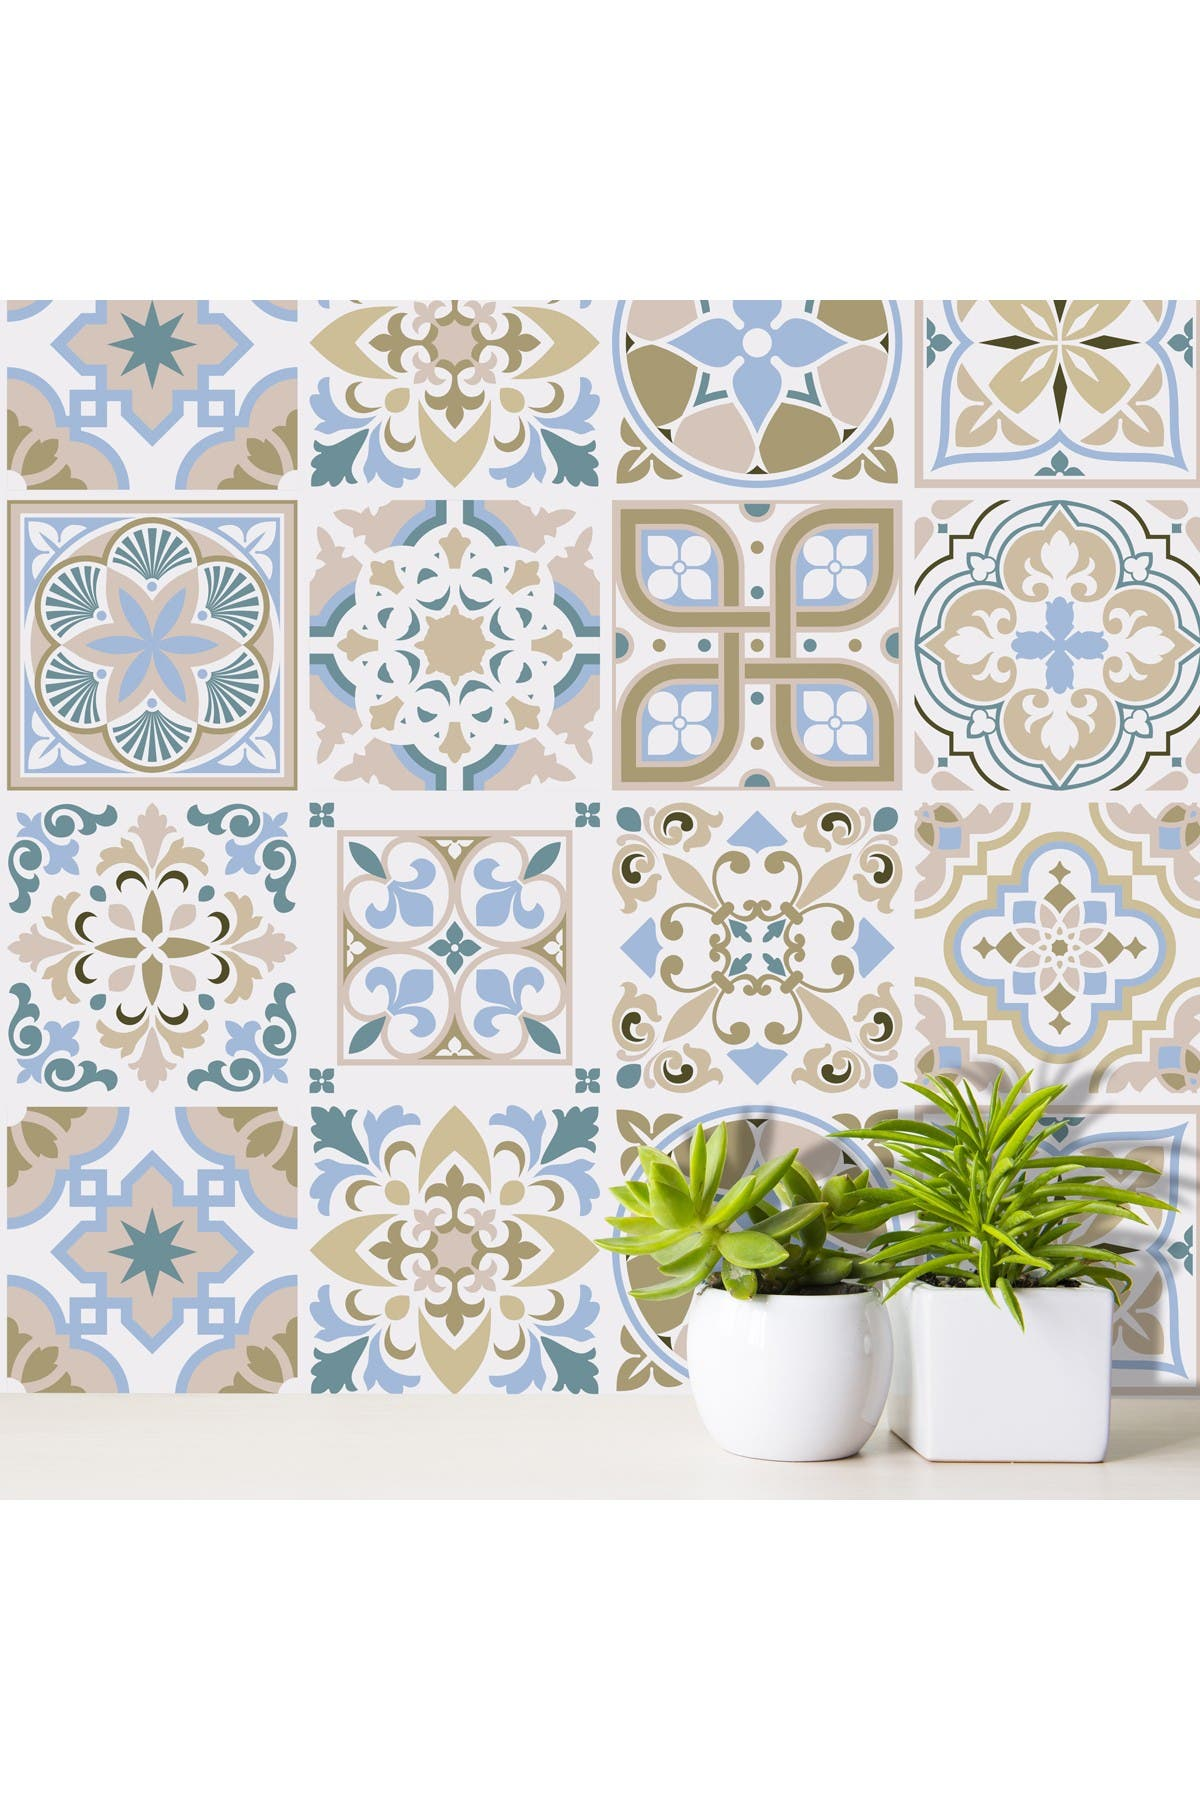 Image of WalPlus Traditional Spanish Tiles Wall Stickers 24-Piece Set